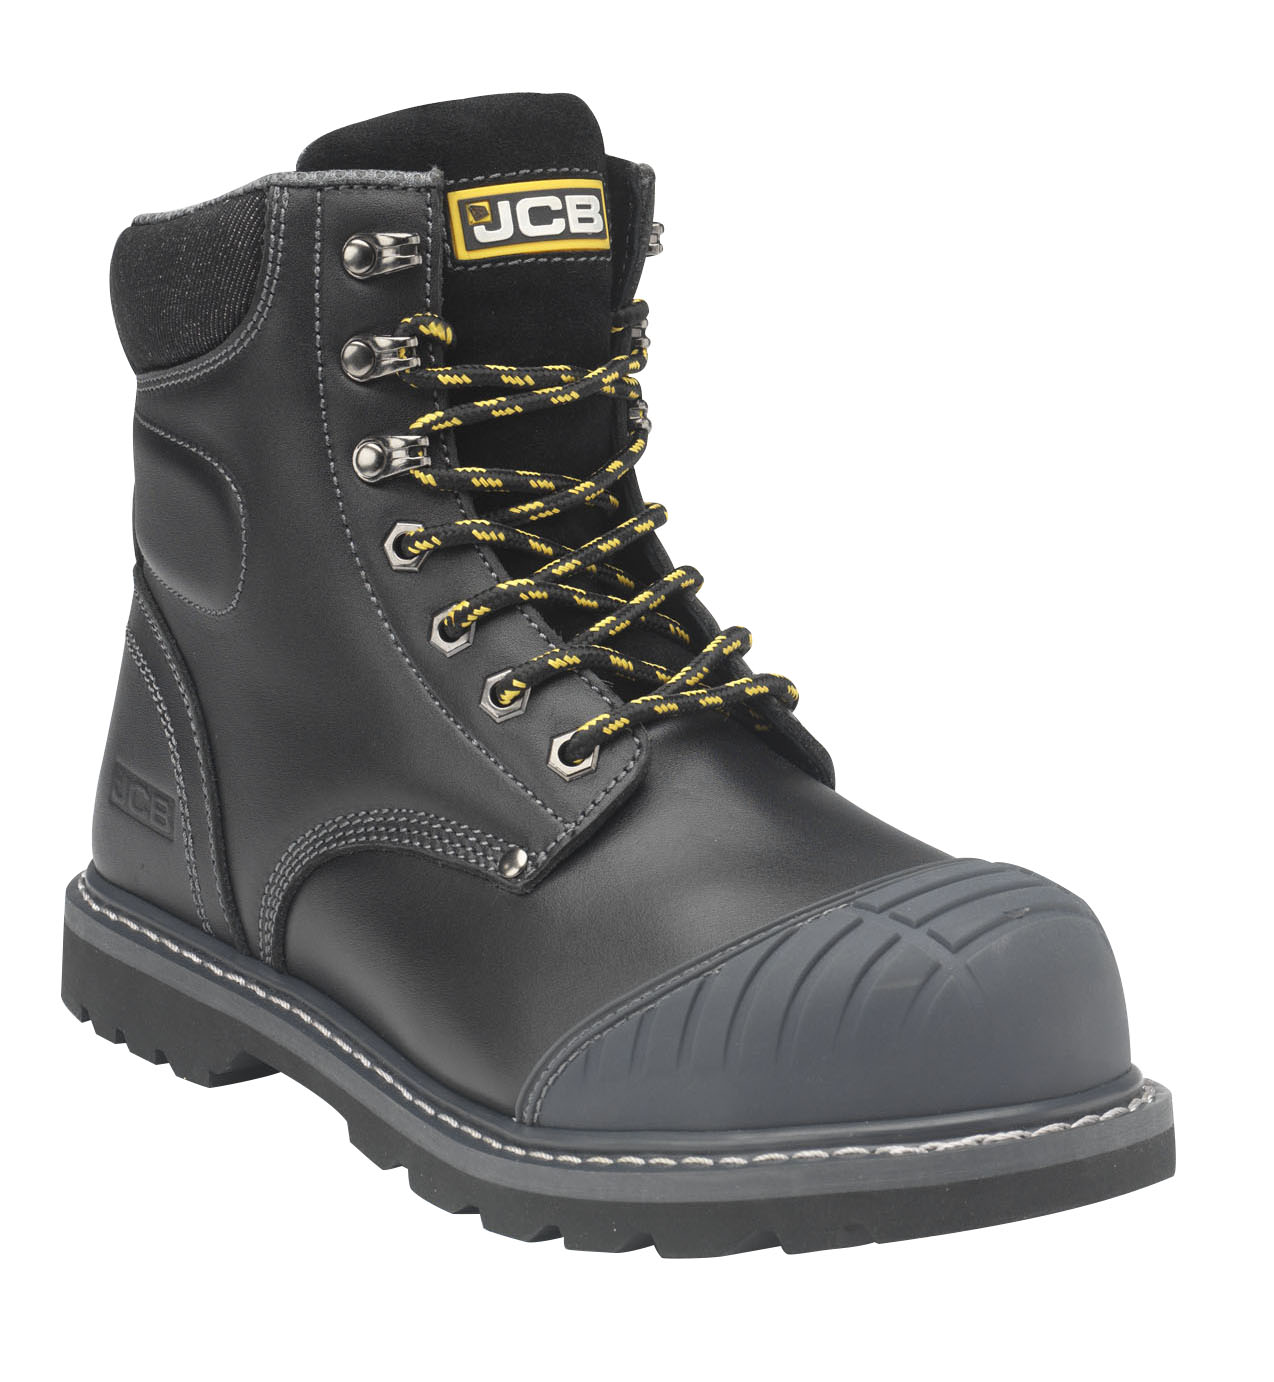 5CX+/B JCB 5CX+ BLACK BOOT